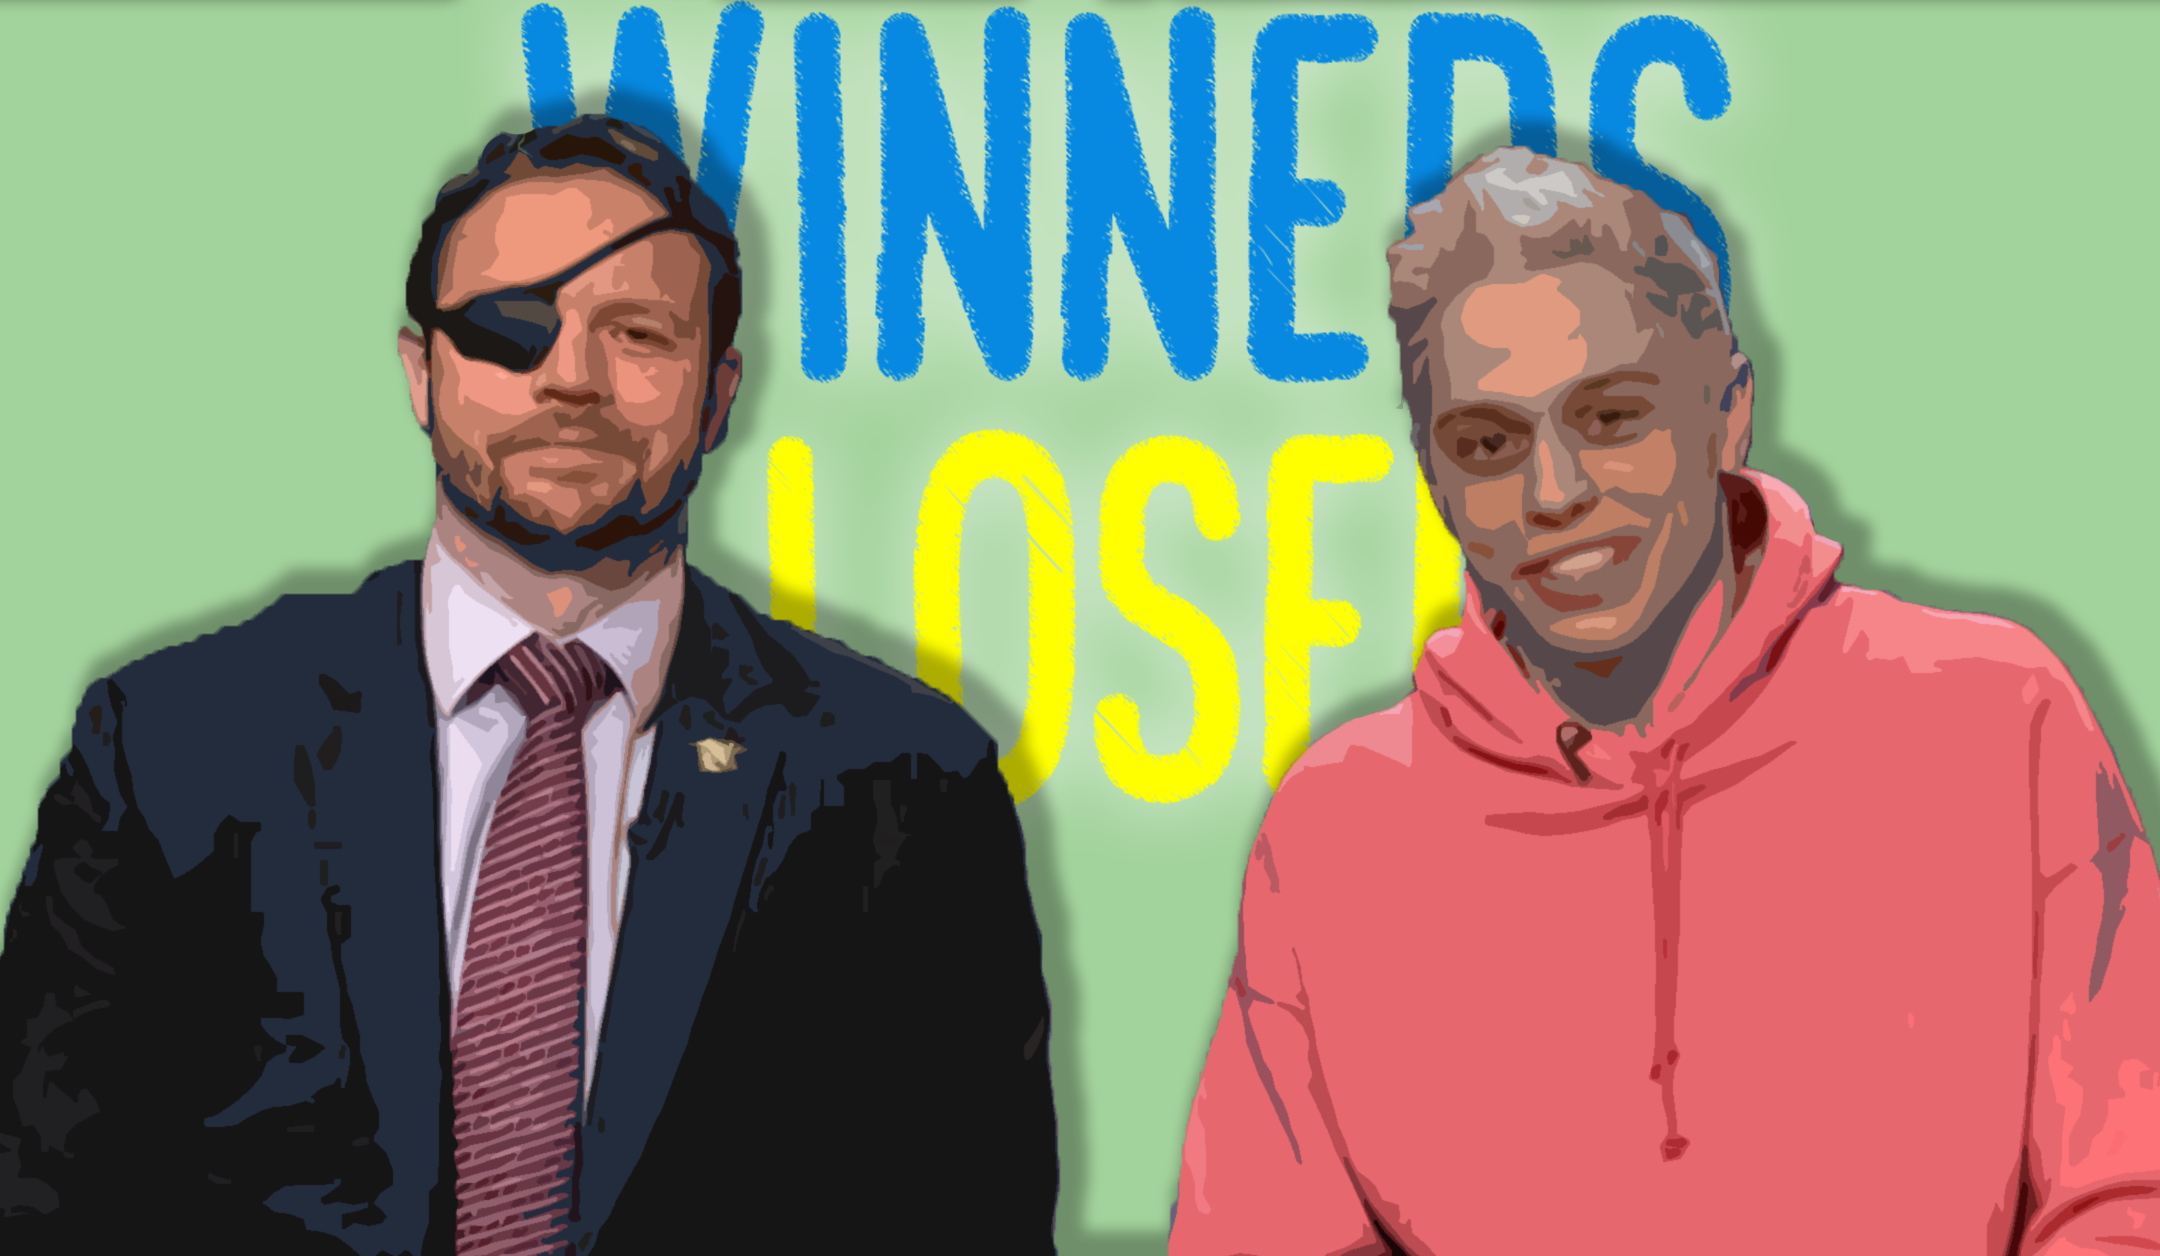 Winners And Losers: Give Dan Crenshaw A Spot On SNL Tomorrow